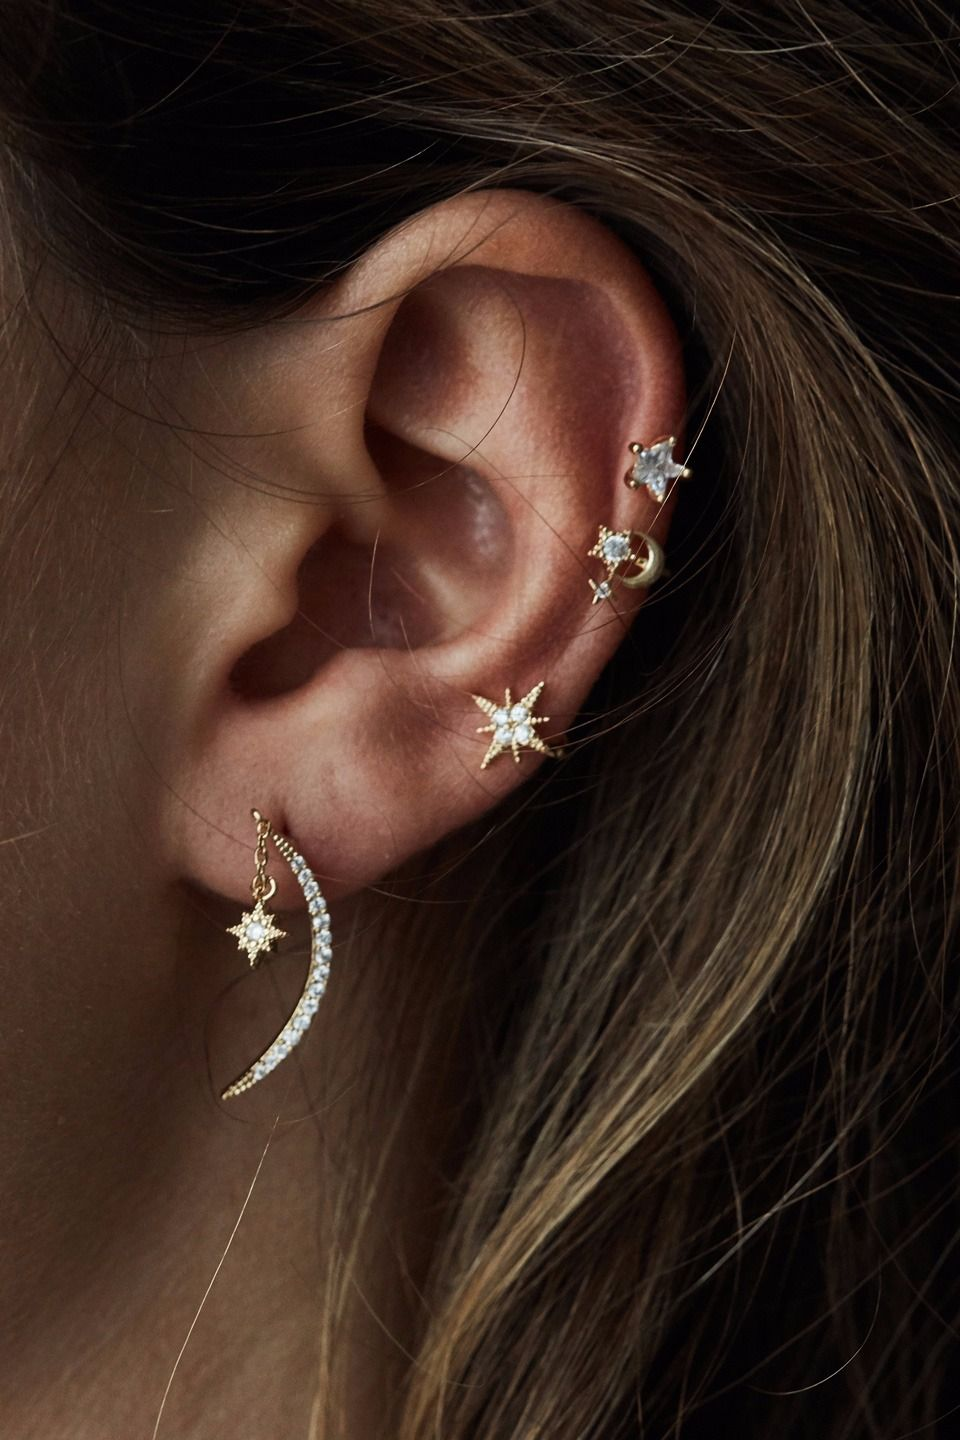 Little nose piercing  Pin by Mary Williams on ujewelryu  Pinterest  Moon Piercings and Star